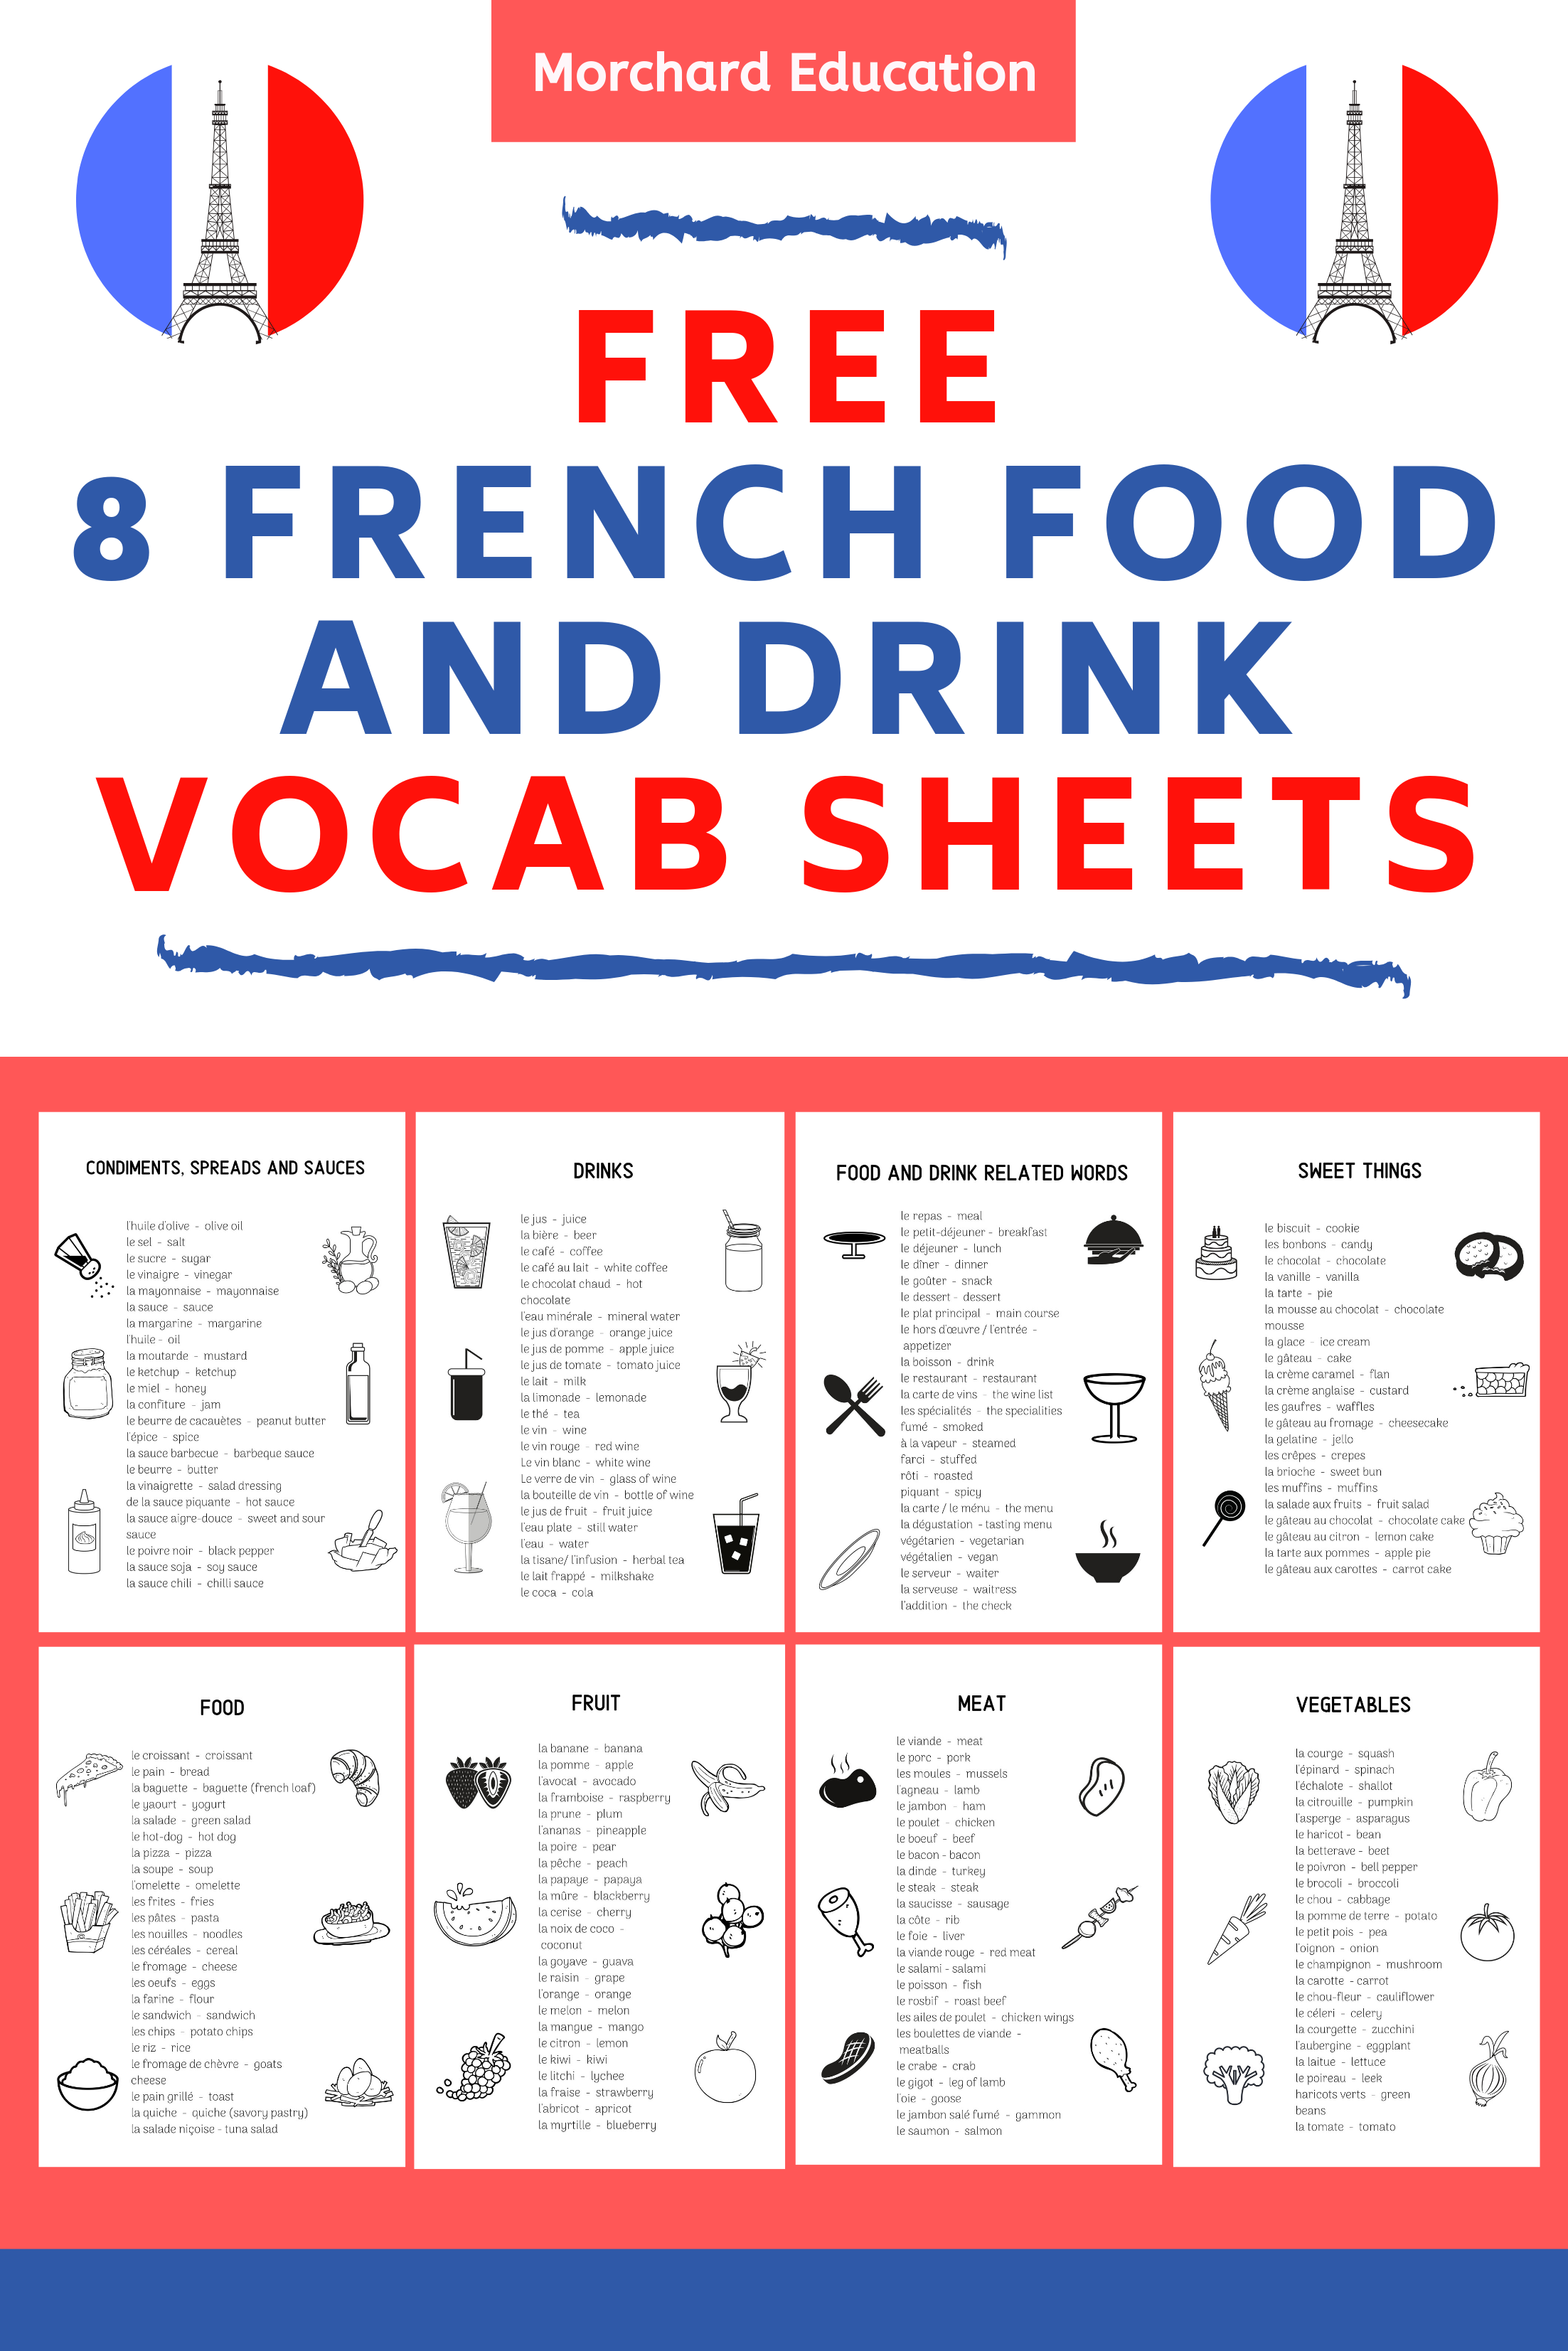 8 Free French Vocabulary Sheets (Food and Drink Words